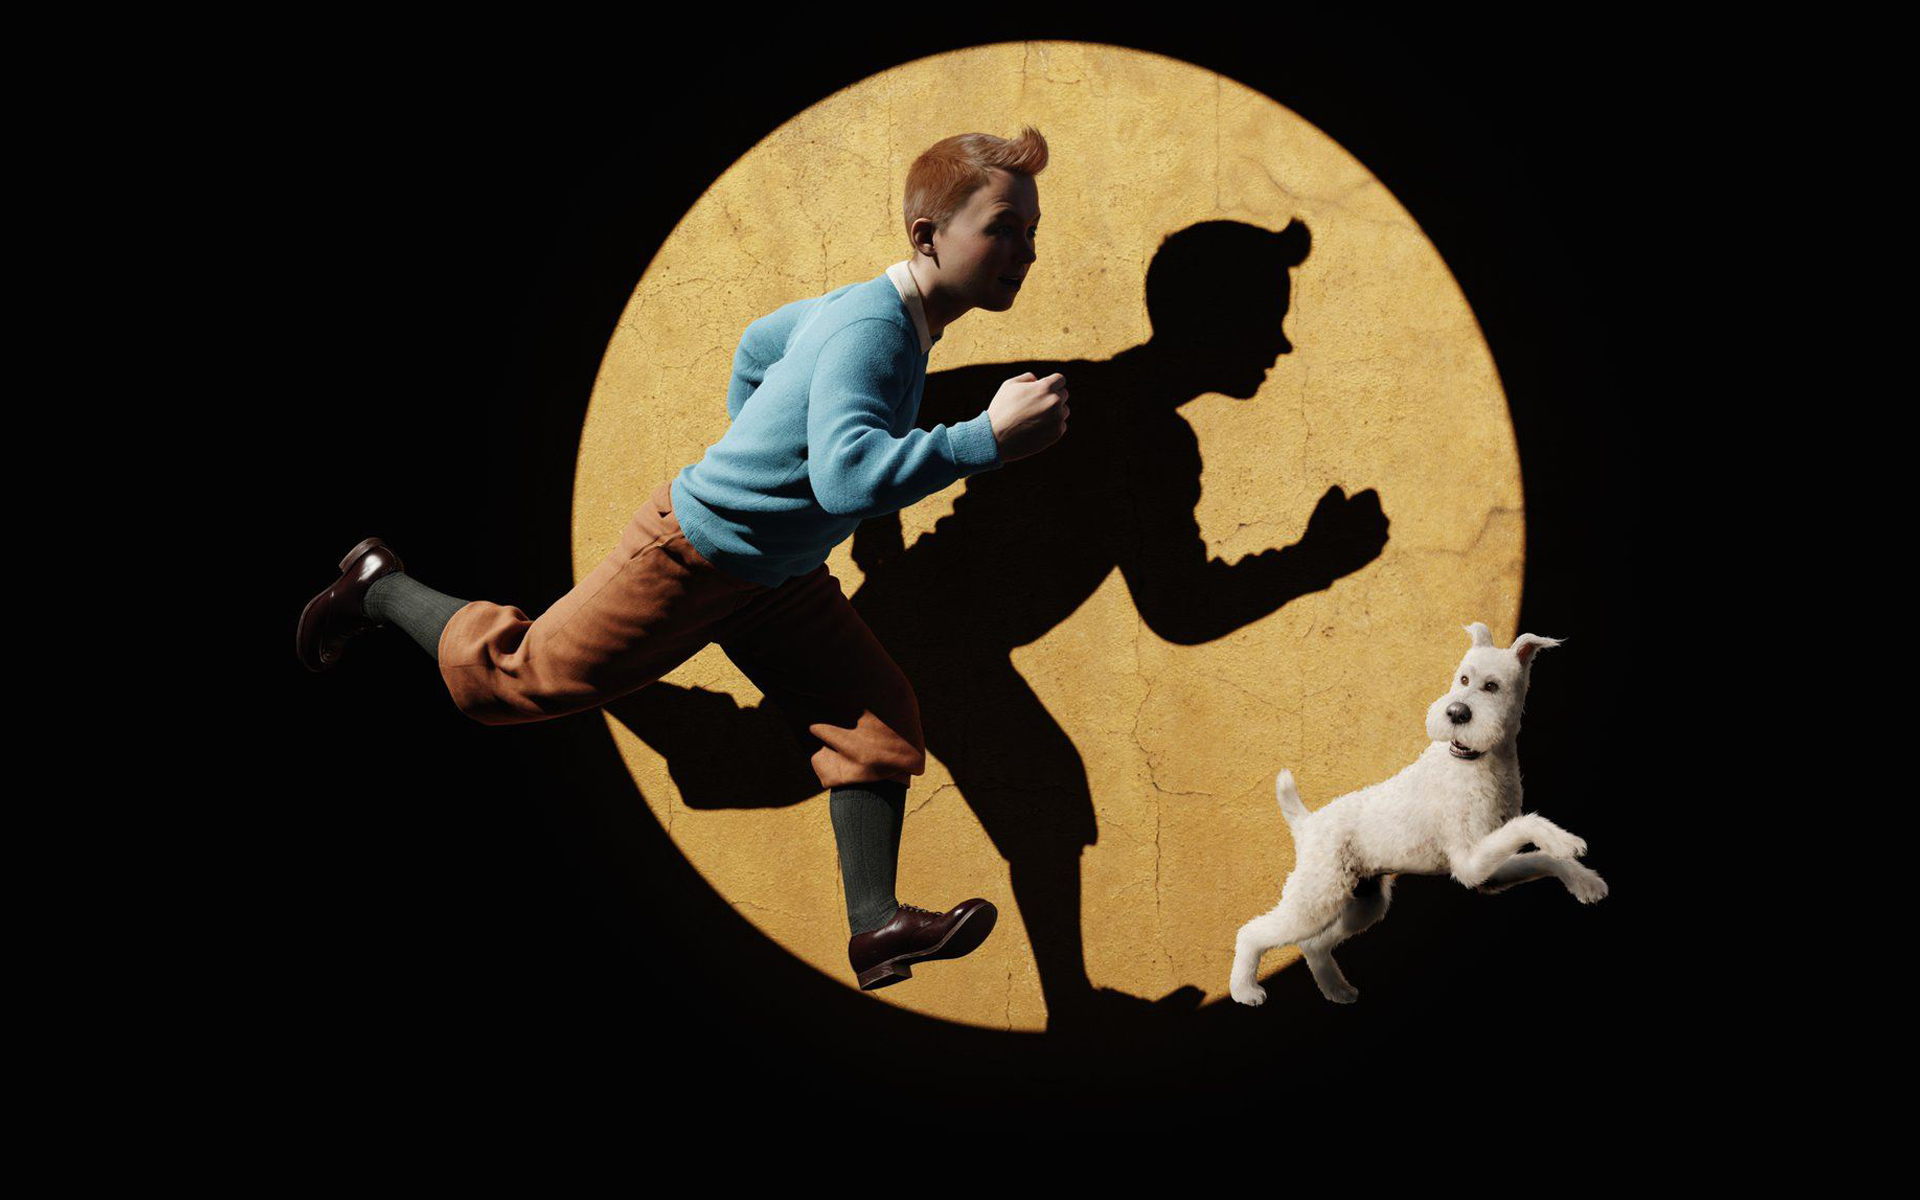 Tintin and Snowy in The Adventures of Tintin